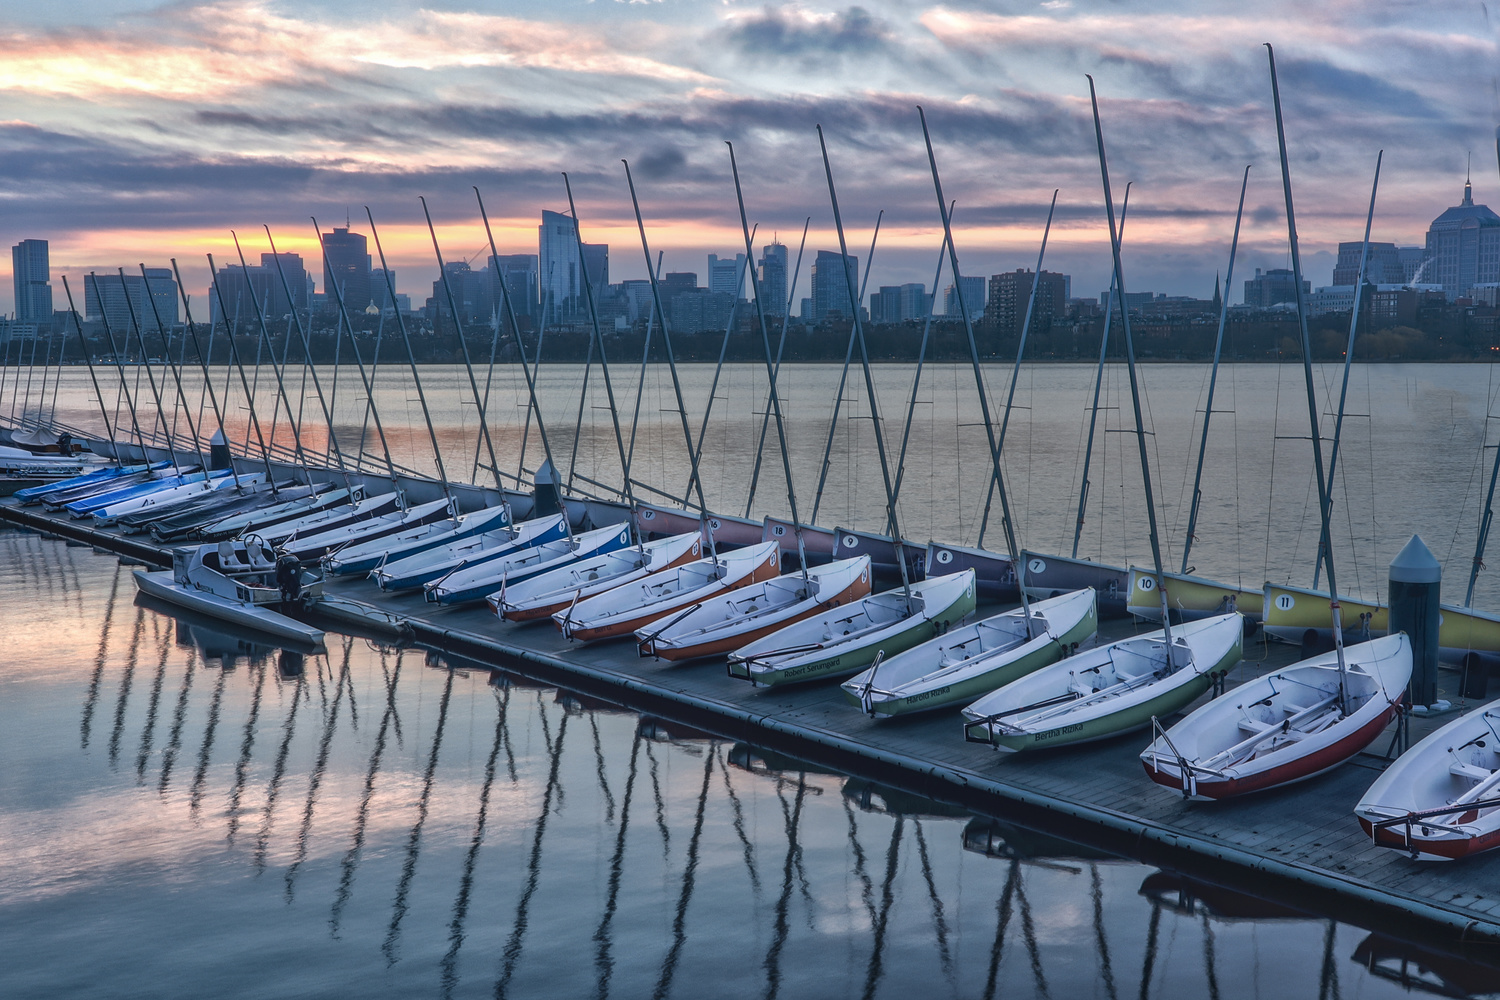 Charles River Boat House by Steve Shannon